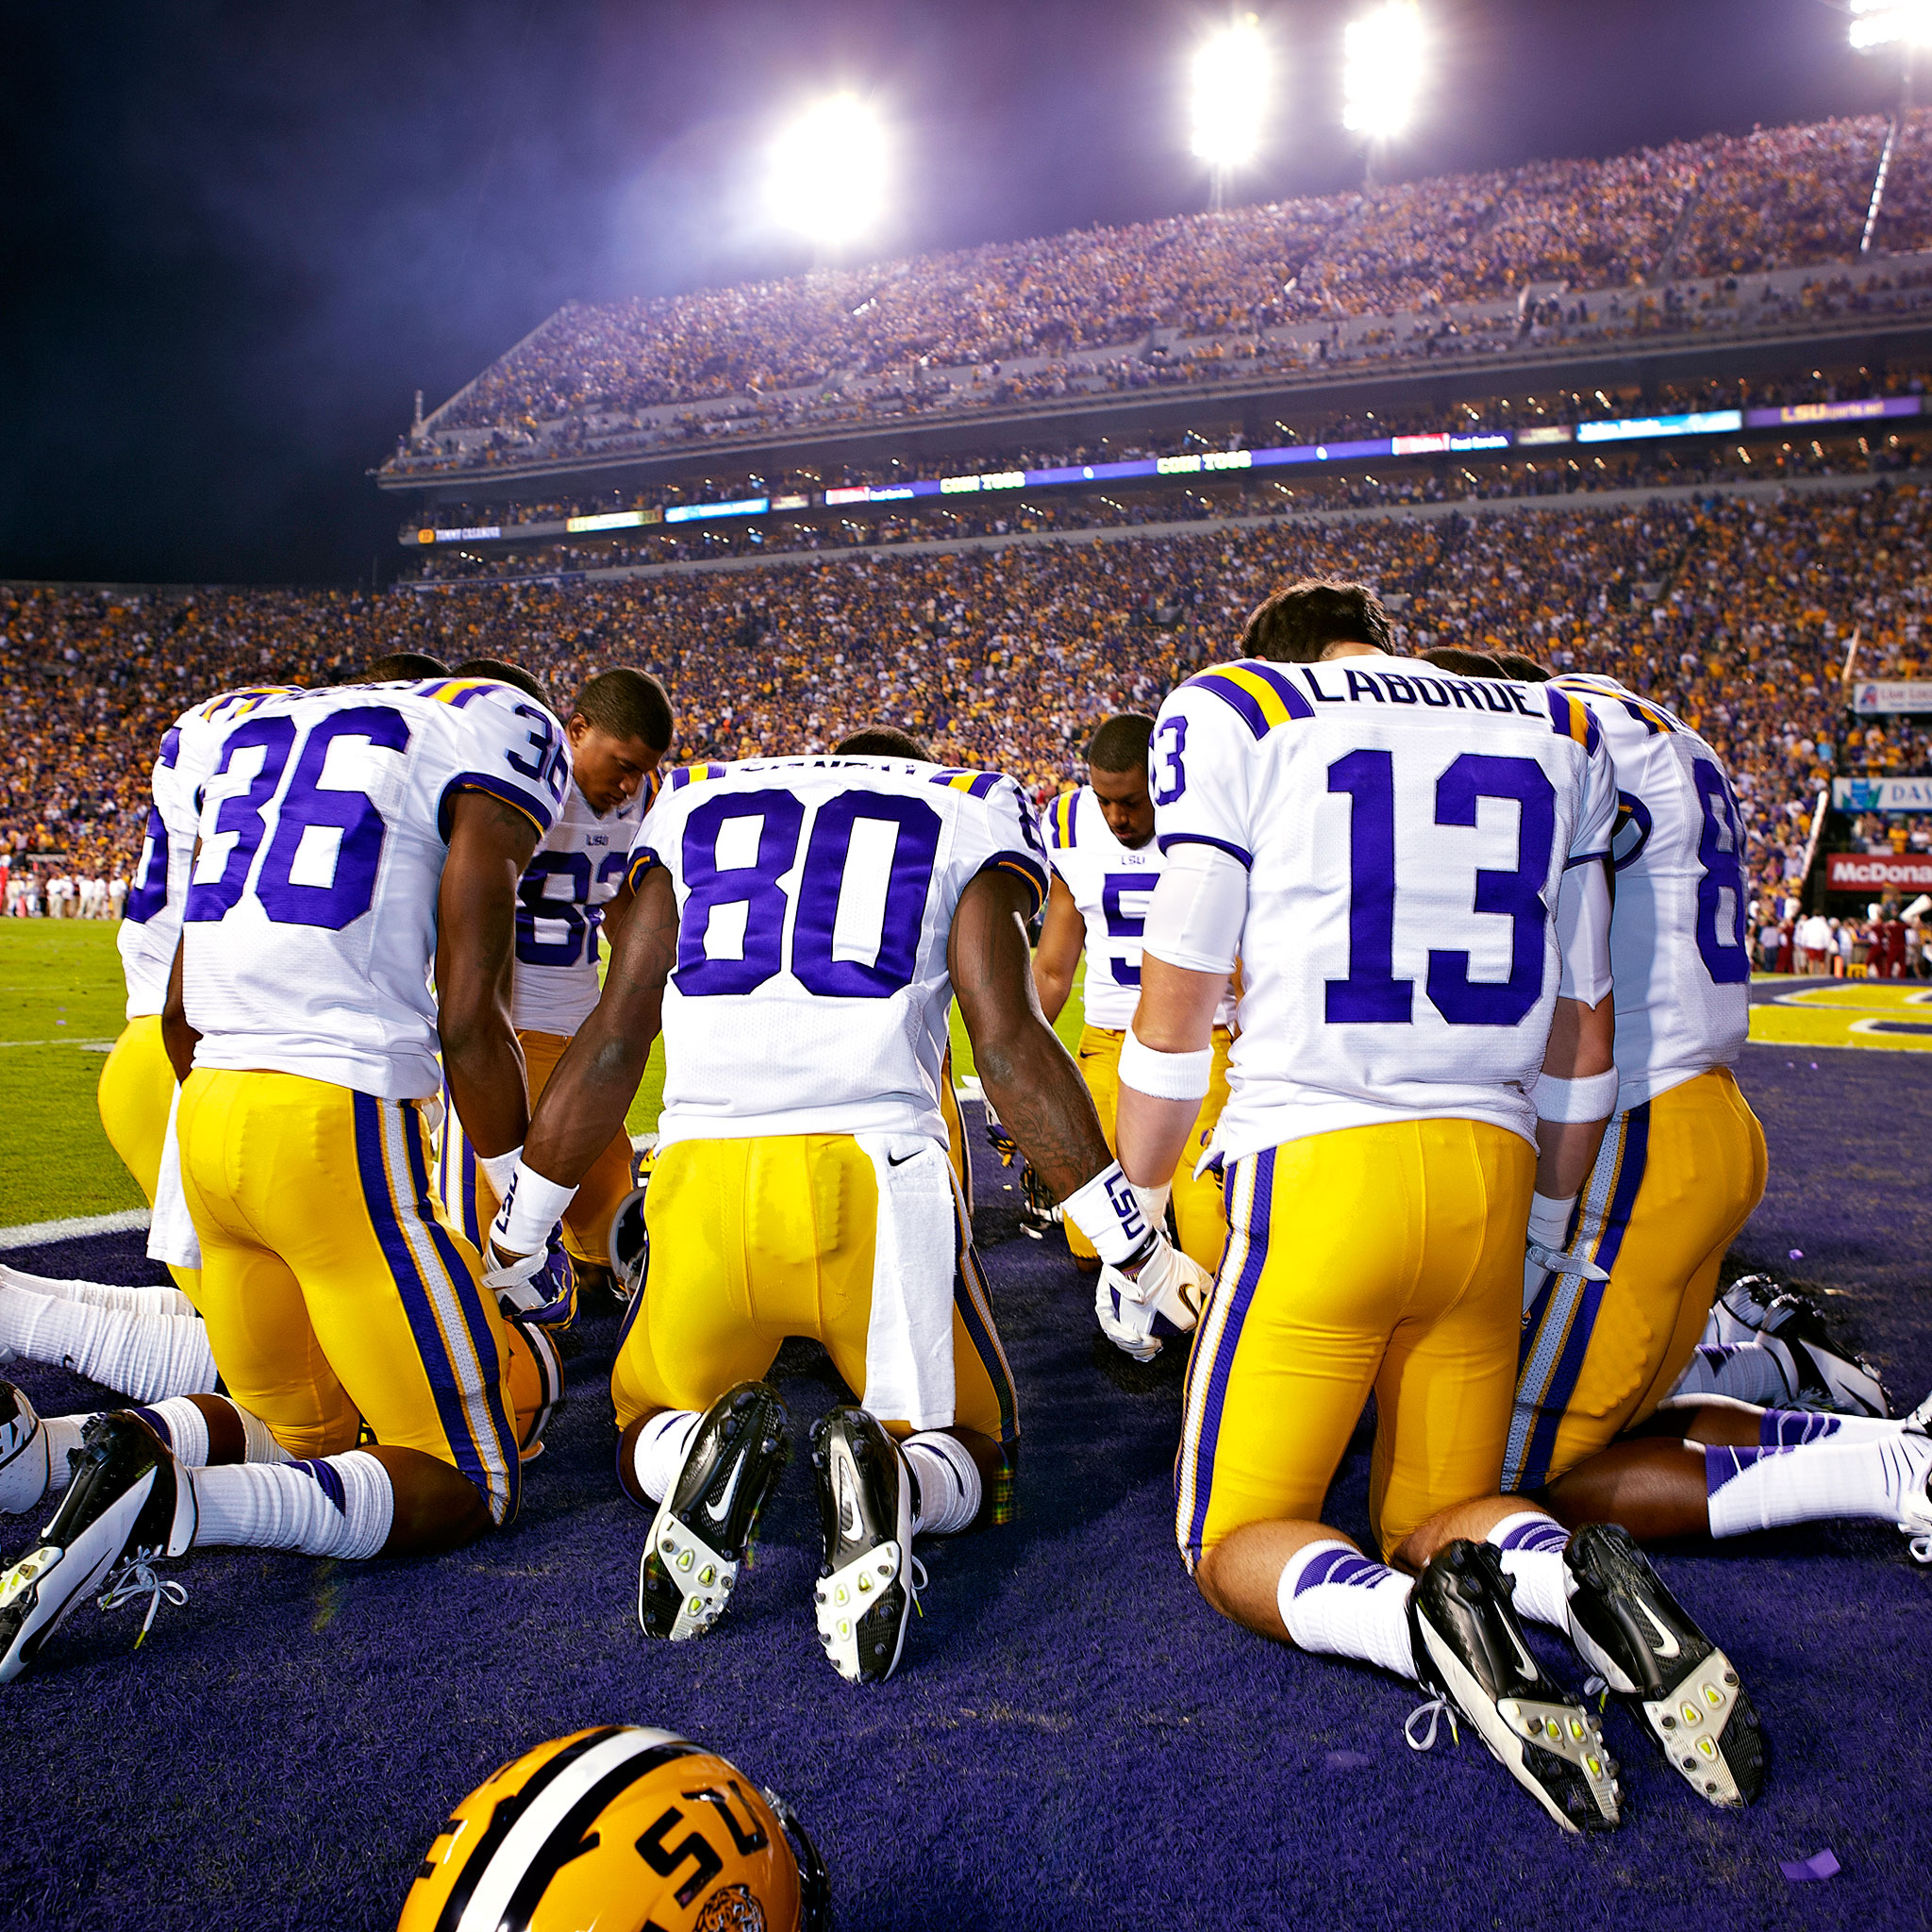 LSU players pray before the game